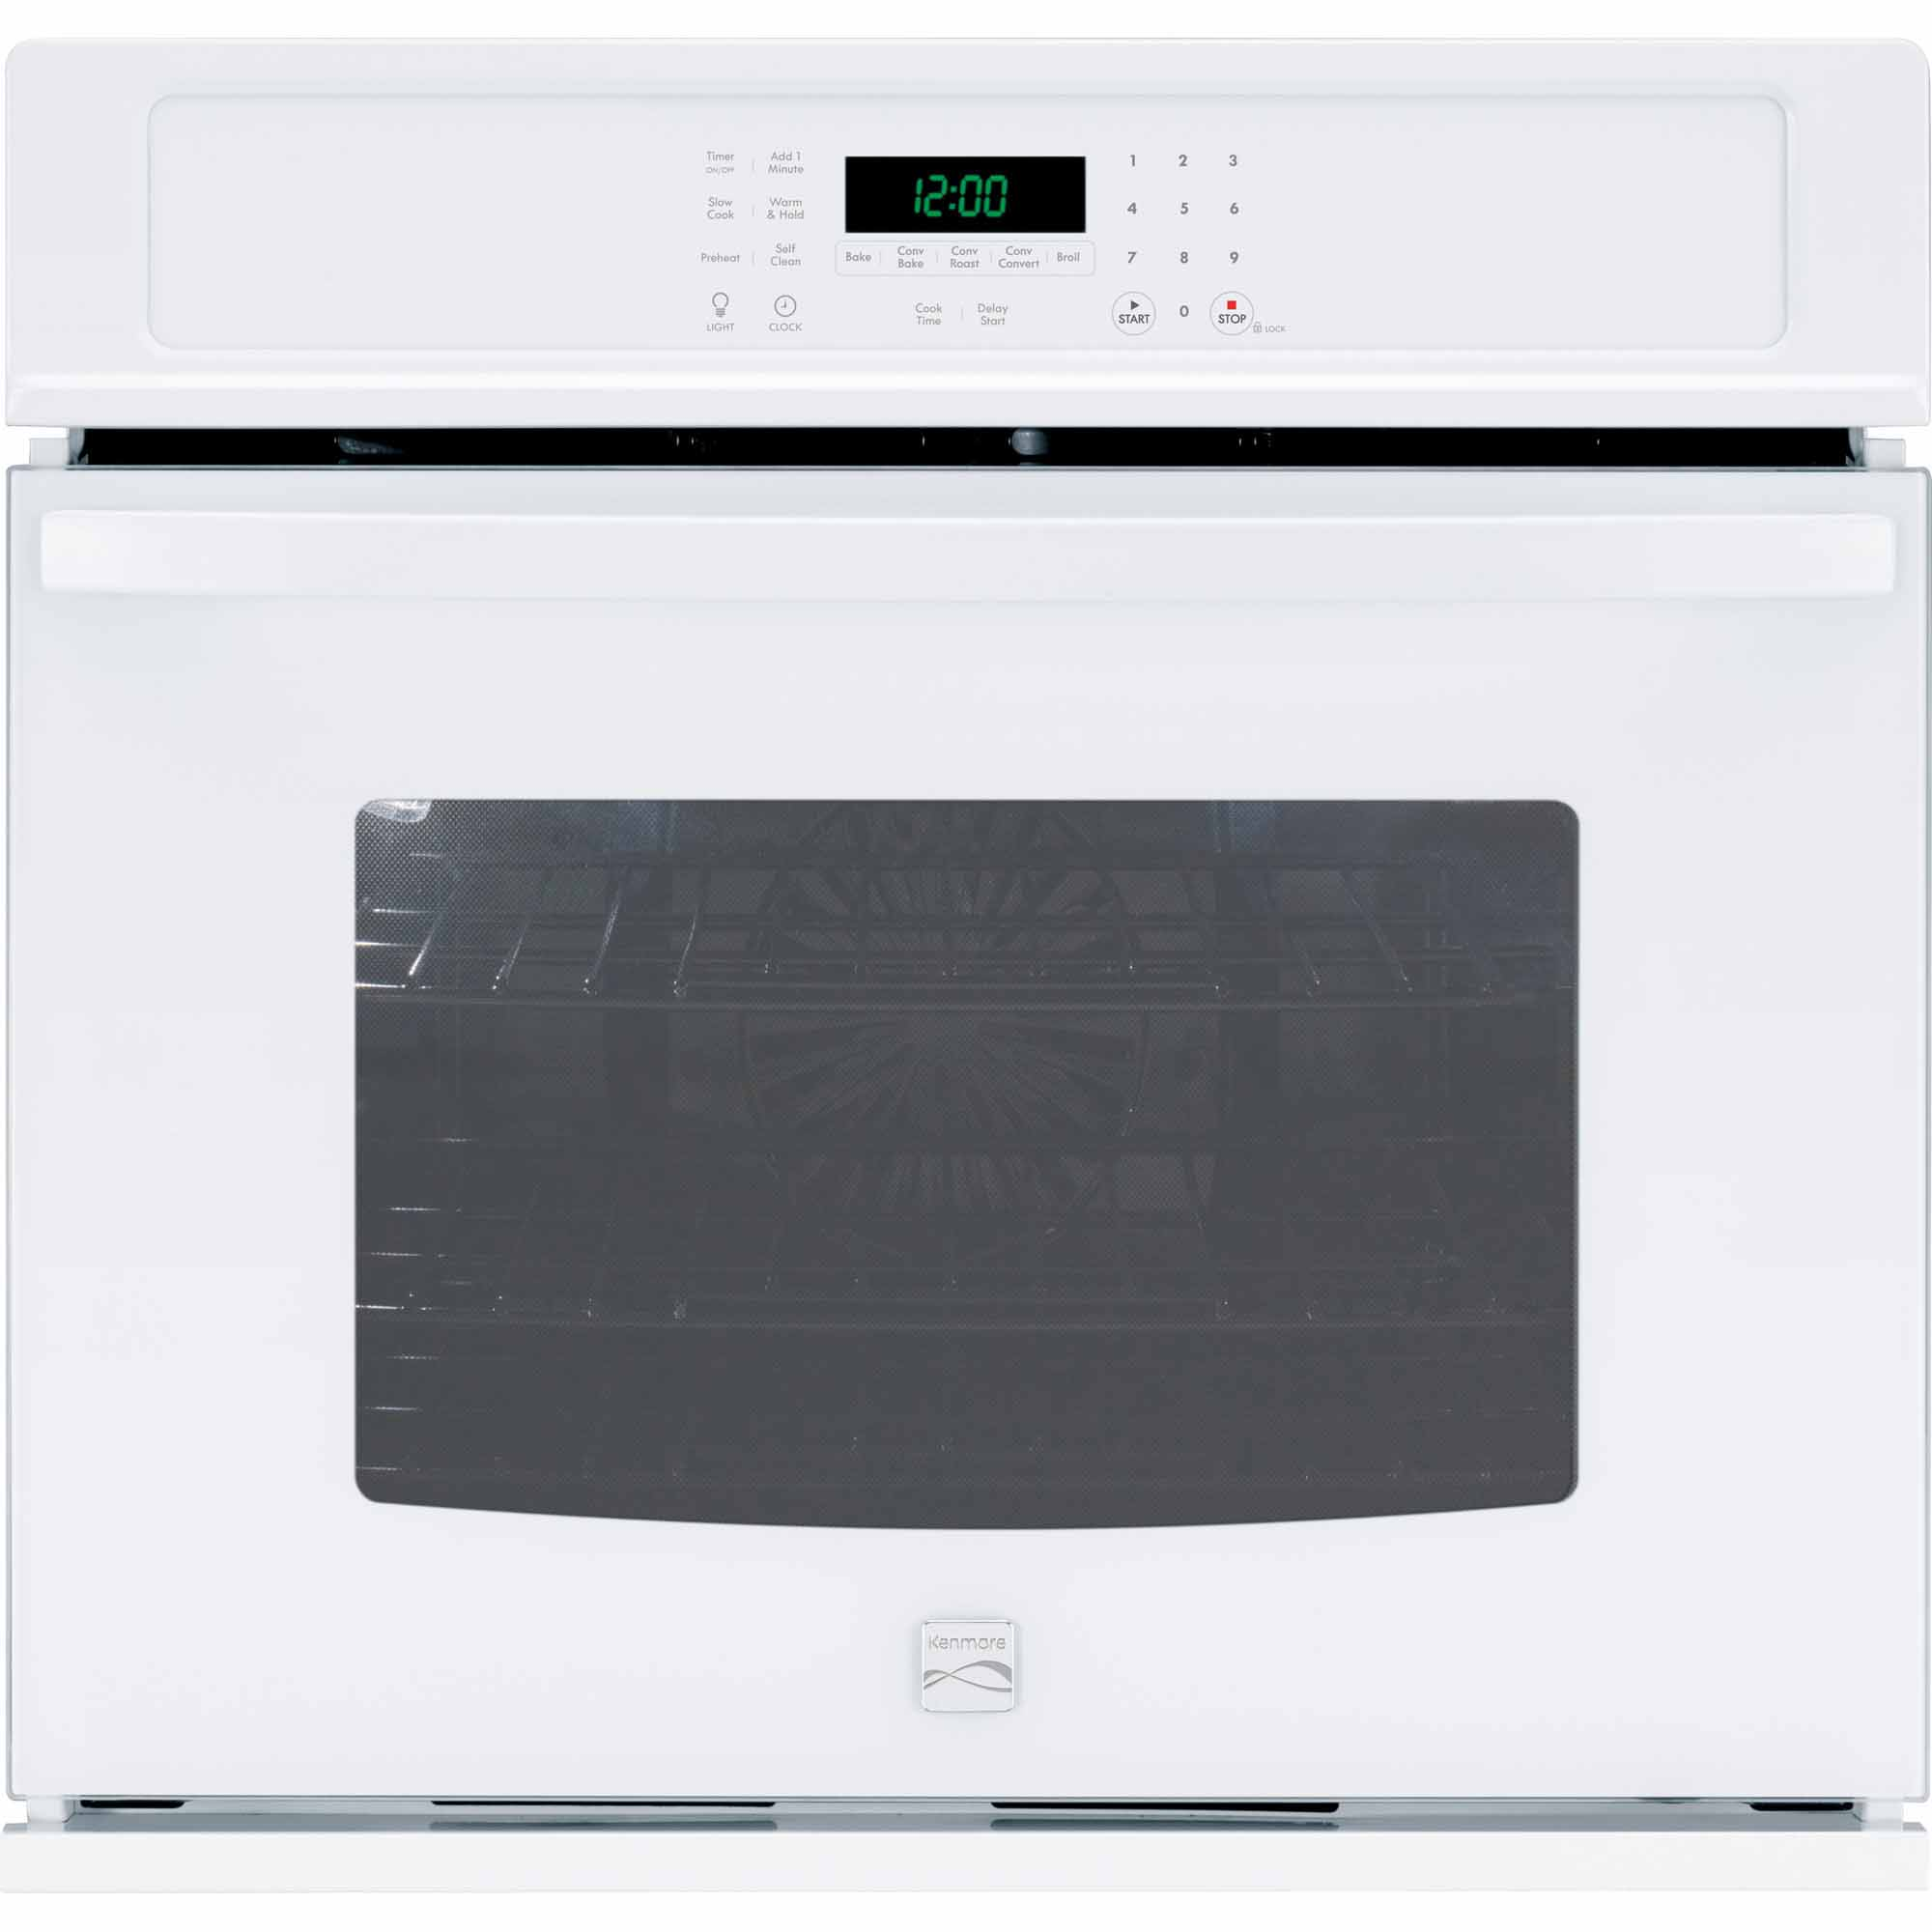 Kenmore 49502 27 Electric Self-Clean Single Wall Oven /w Convection - White